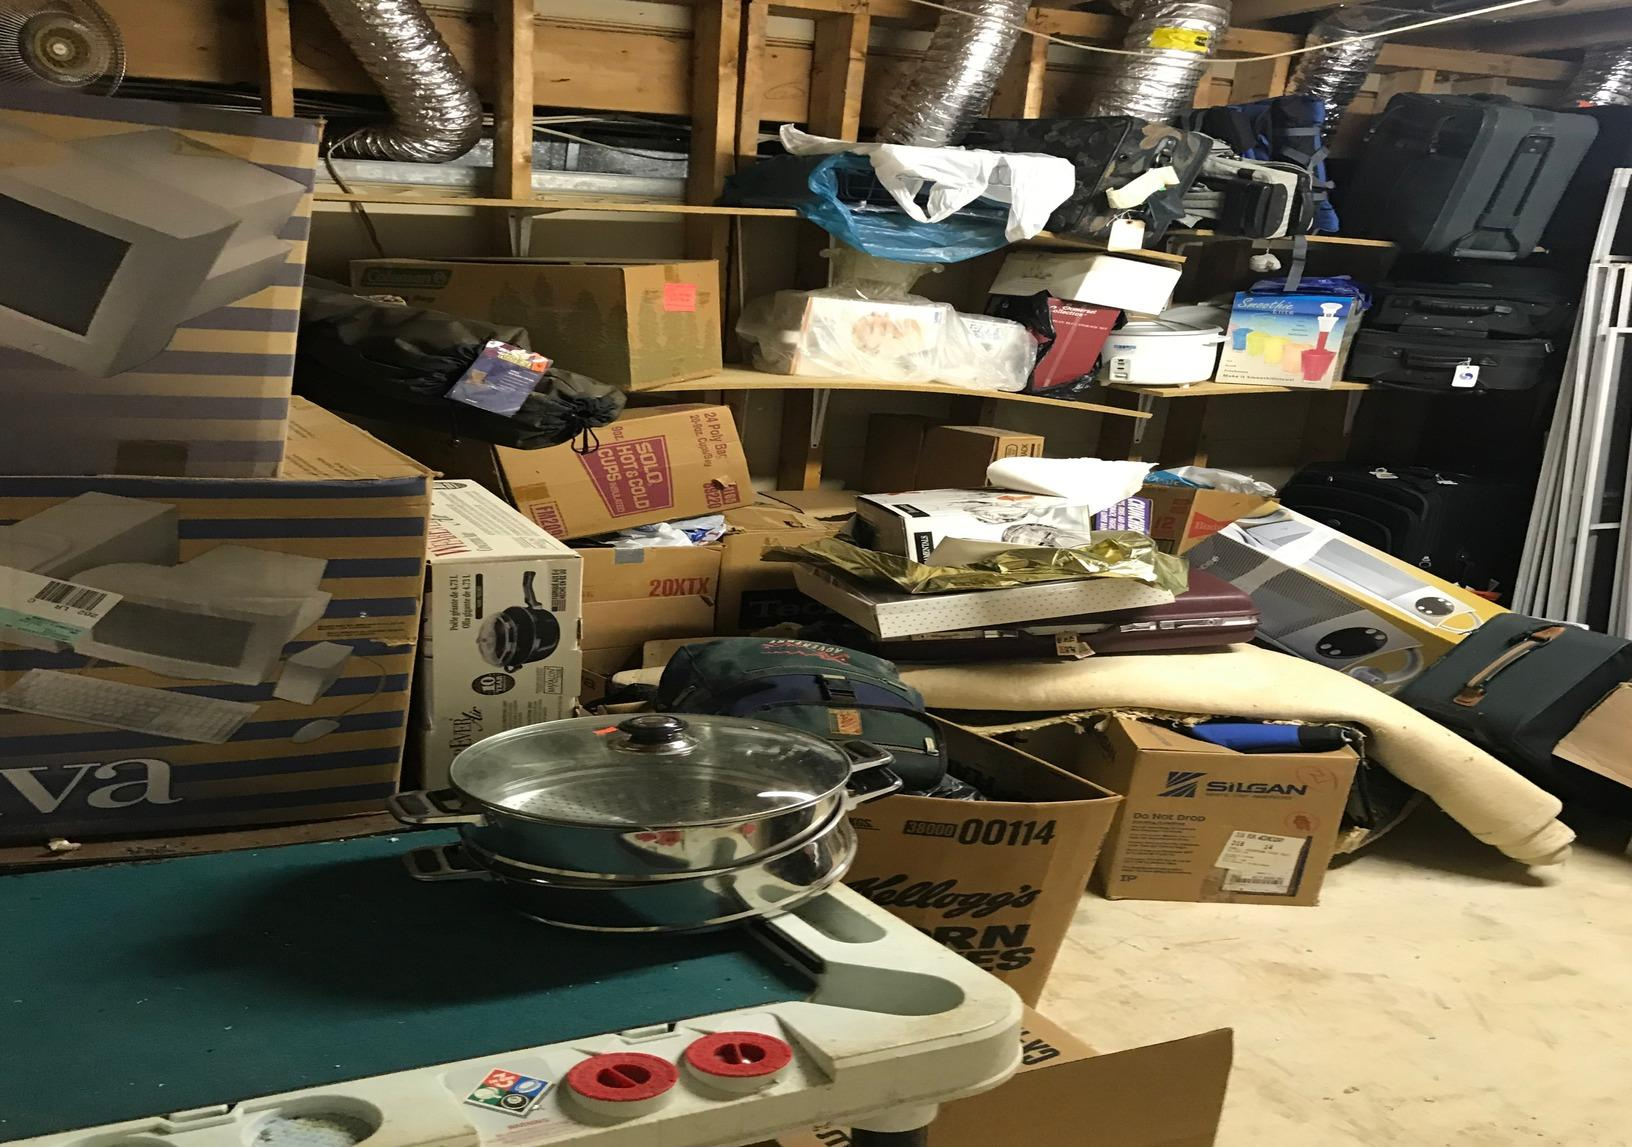 Storage room clean out, Ellicott City MD. - Before Photo